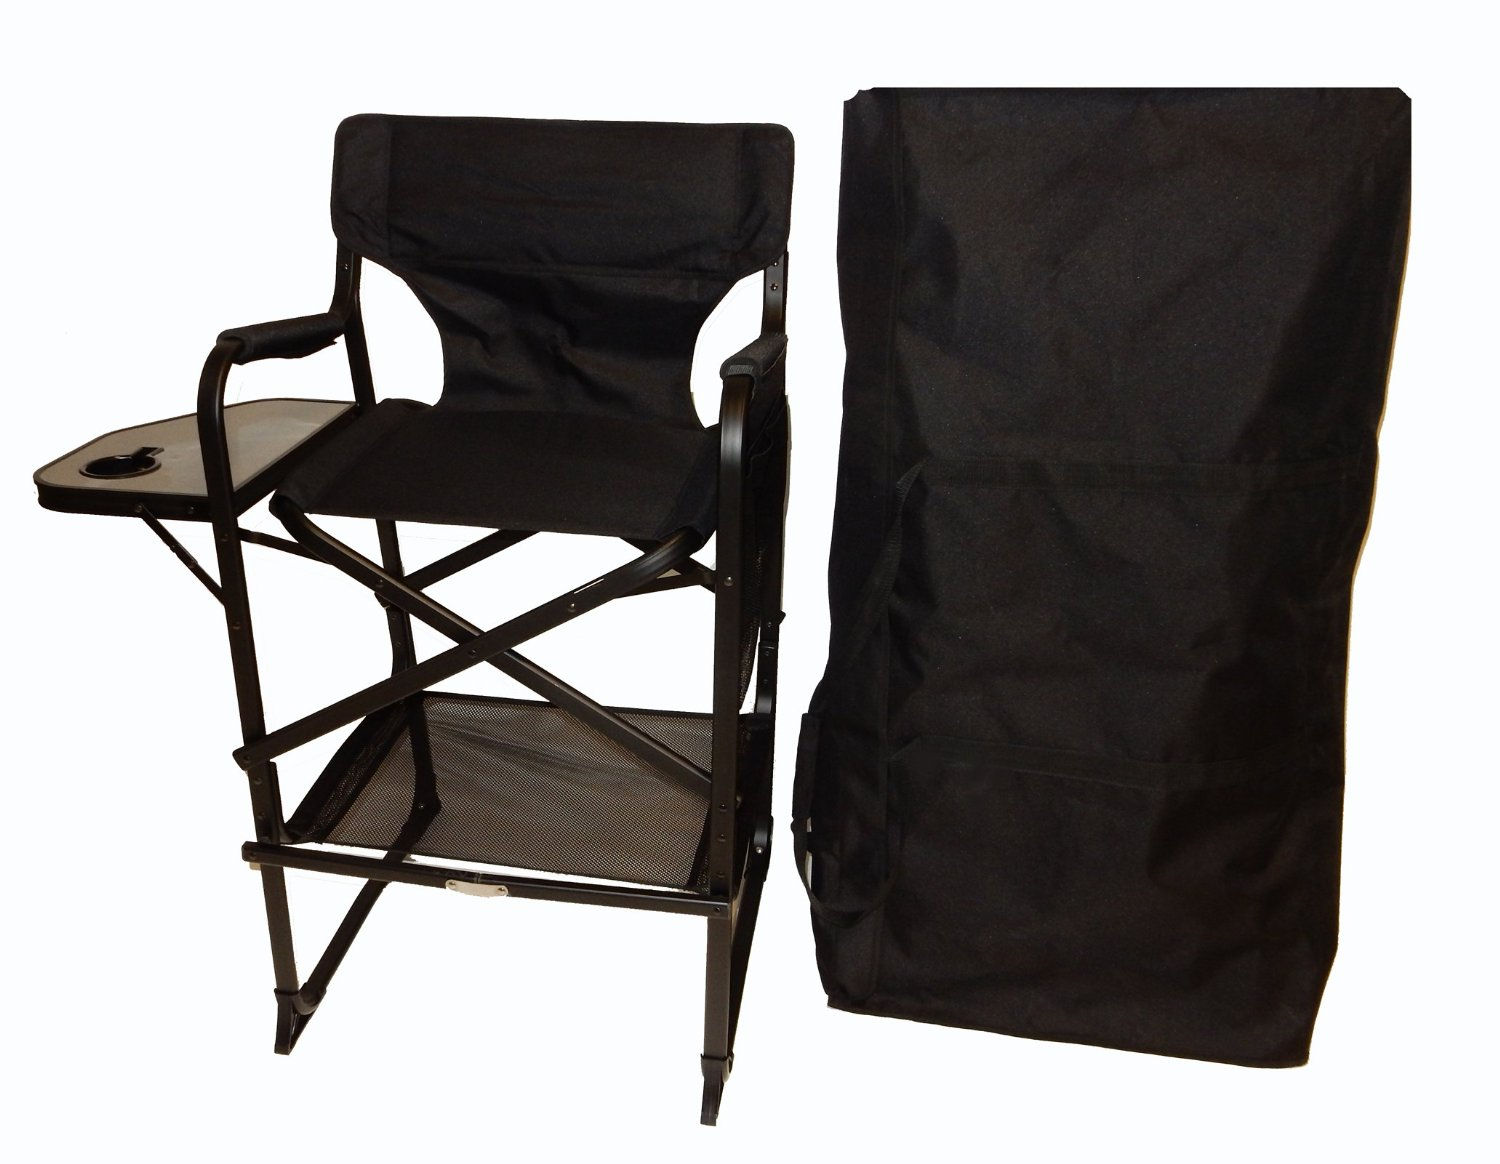 World Outdoor Products Lightweight PROFESSIONAL EDITION Tall Directors Chair with CUSTOM ZIPPERED Storage Bag, Side Table with Built-In Cup Holder REMOVABLE PATCH on Chair Back.